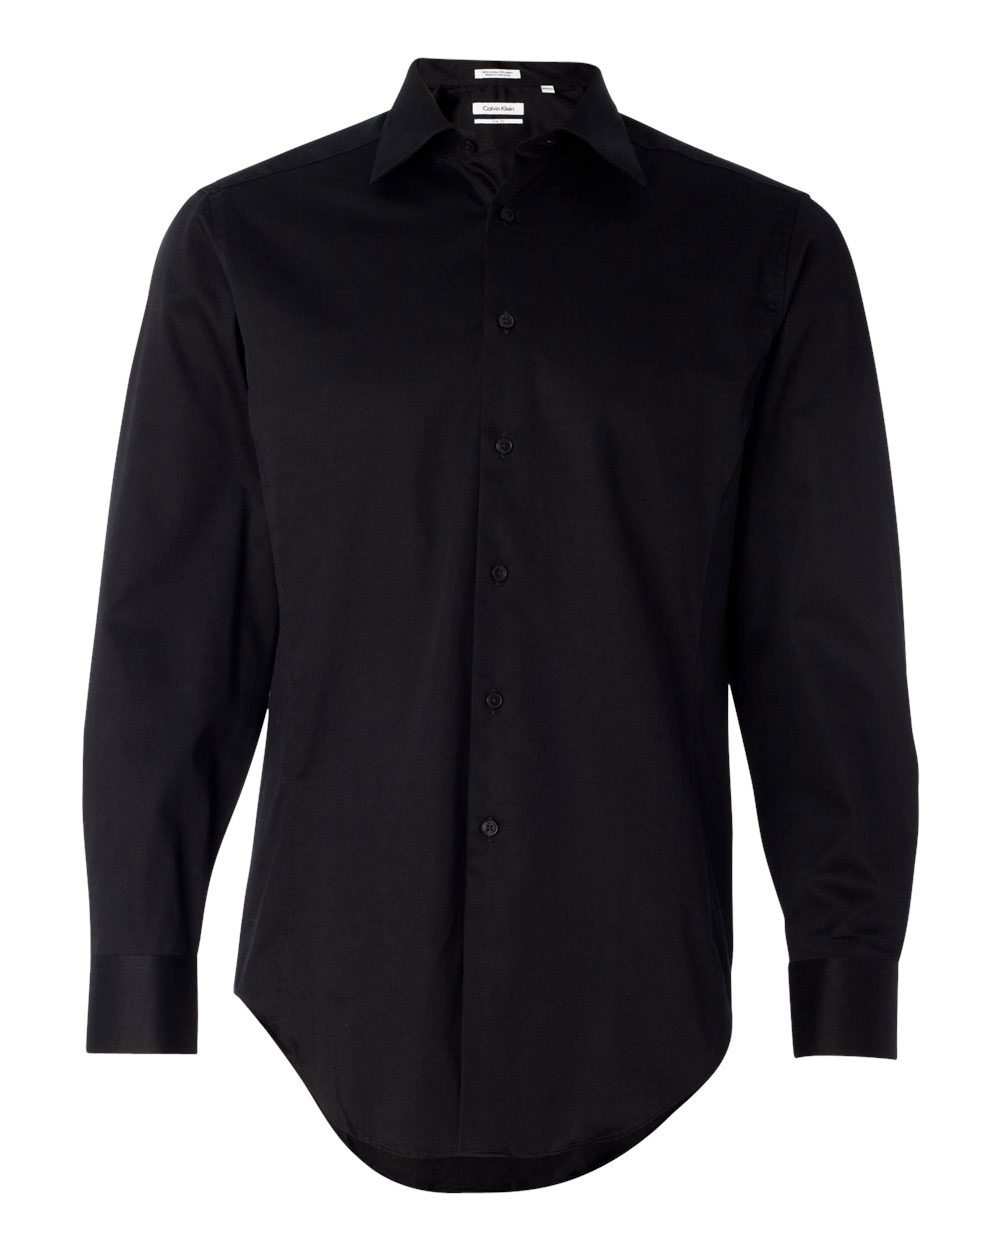 Calvin Klein Slim Fit Cotton Stretch Shirt